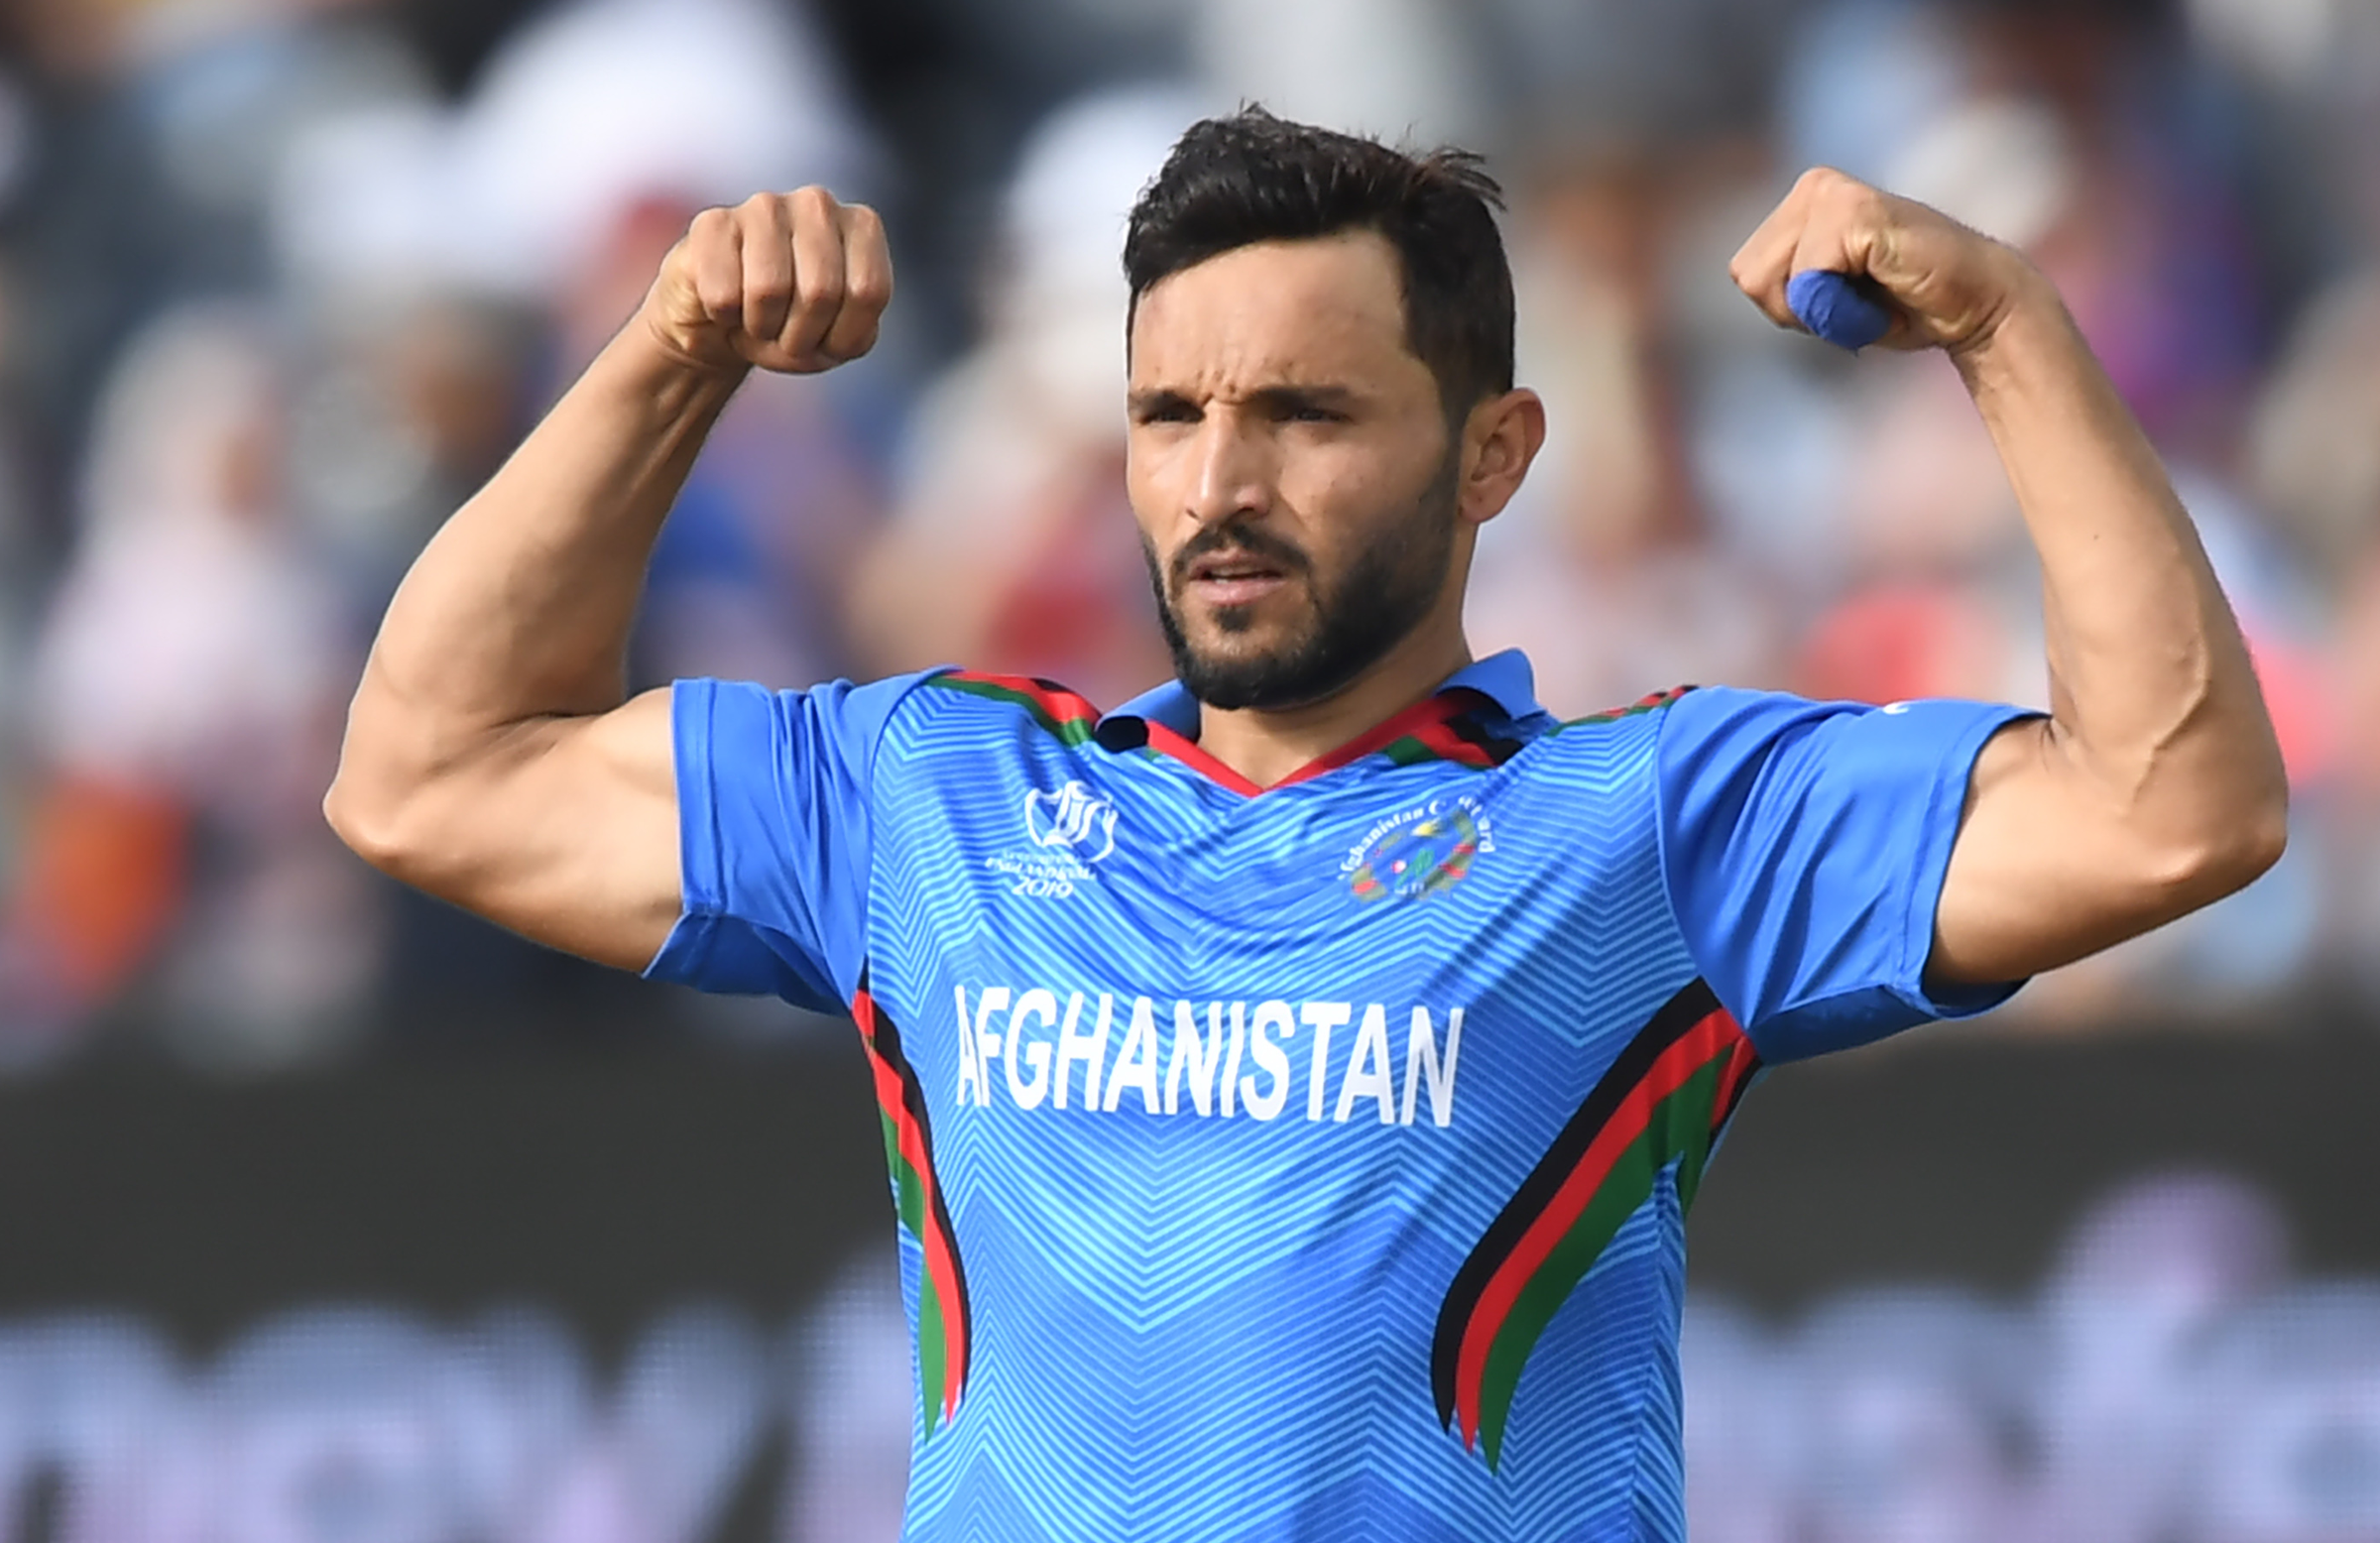 Winless and confident: Afghans plot England upset